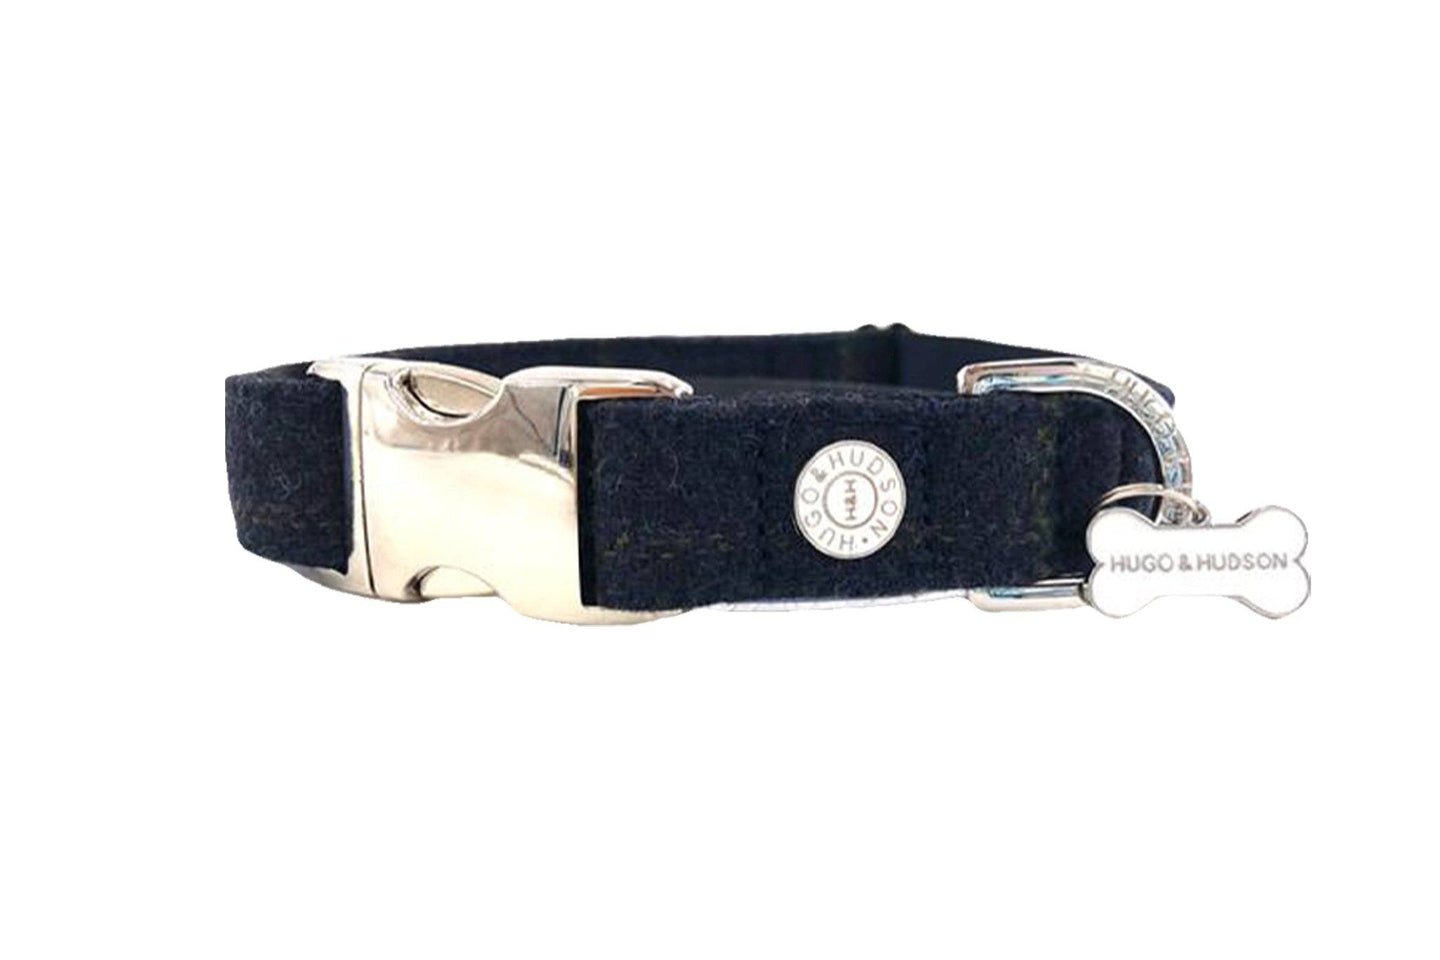 Hugo & Hudson Bone Clasp Collar - Hugo & Hudson Navy Tweed Metal Clasp Collar